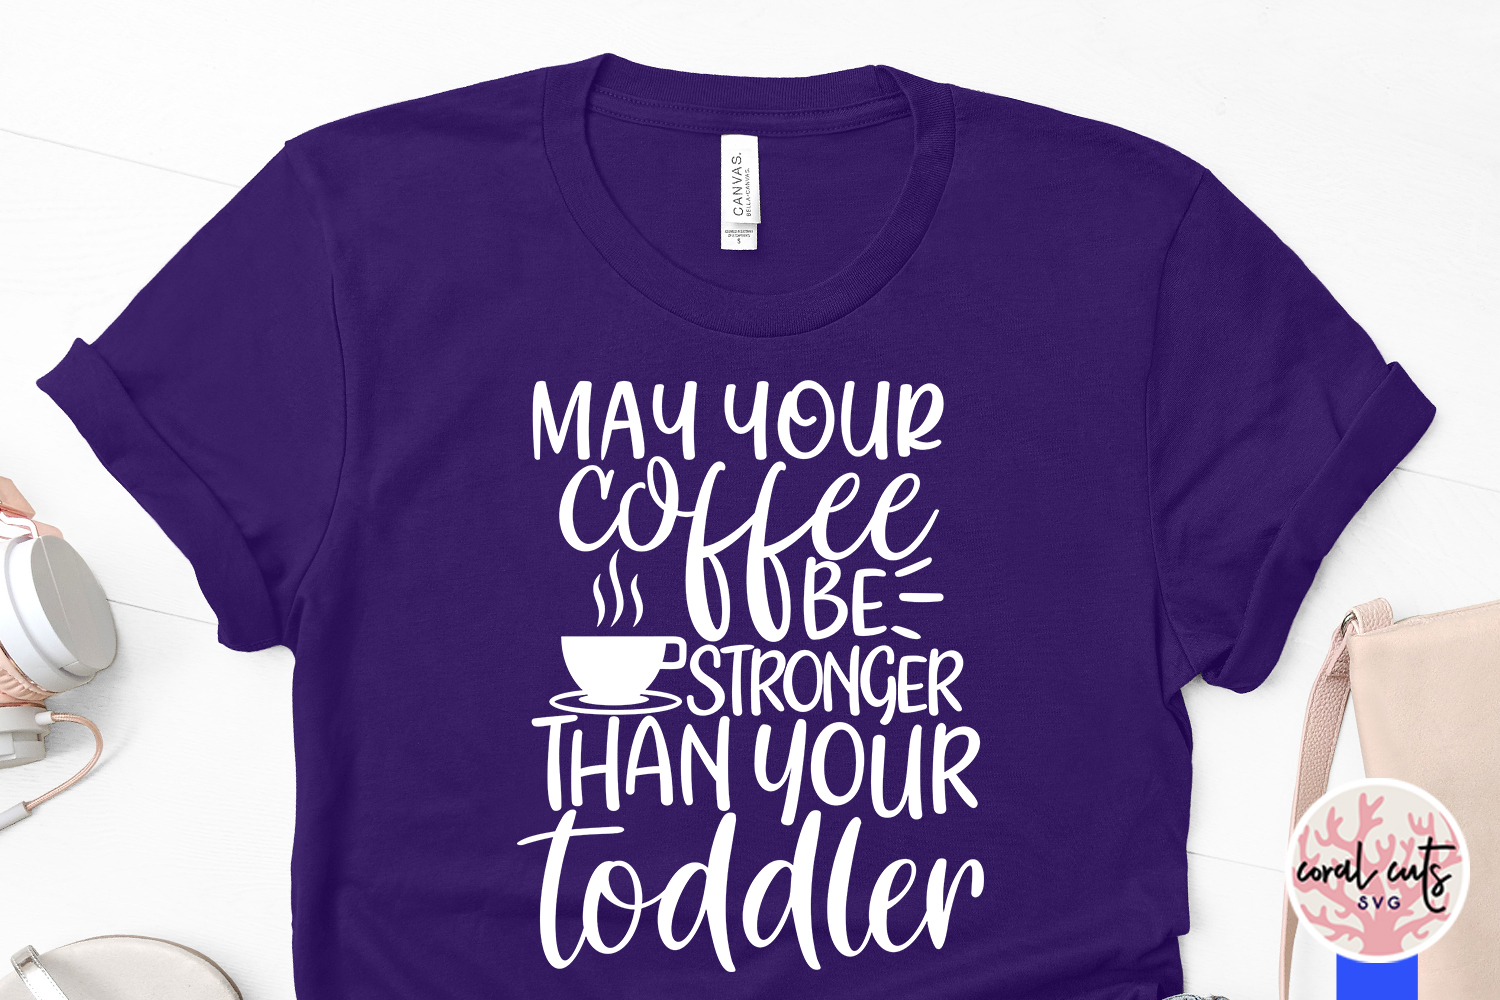 Make your coffee be stronger than your toddler - Mom Life example image 3